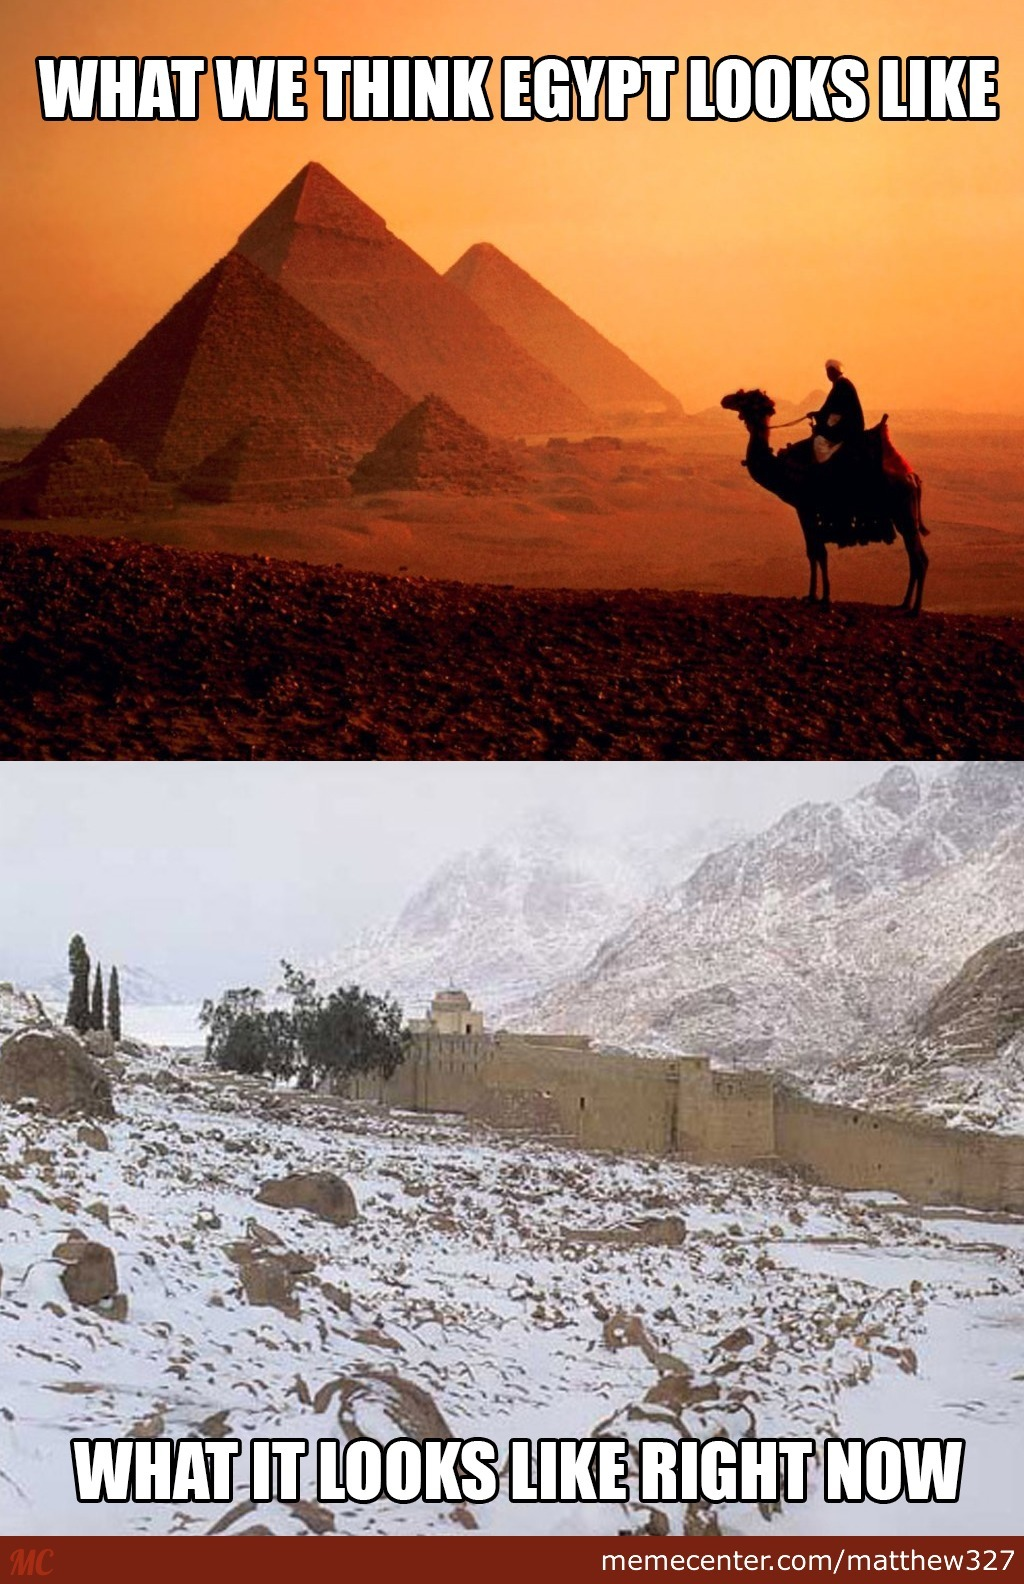 Friend From Egypt Sent Me The Bottom Picture - Thats St. Catherine Monastery, Egypt.